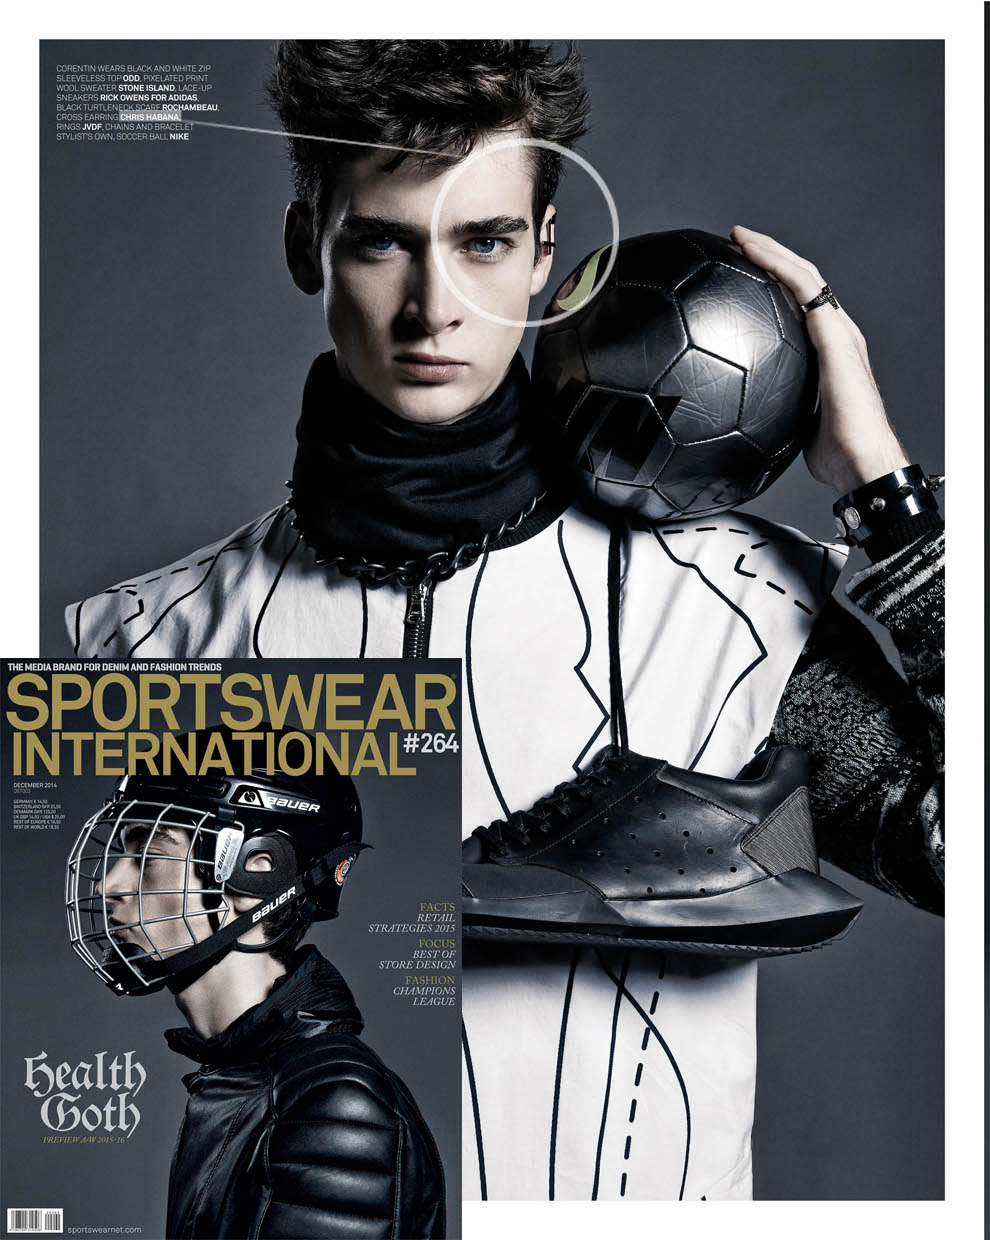 "Our ""CROSS DIVE CUFF"" featured in issue #264 of SPORTSWEAR INTERNATIONAL."